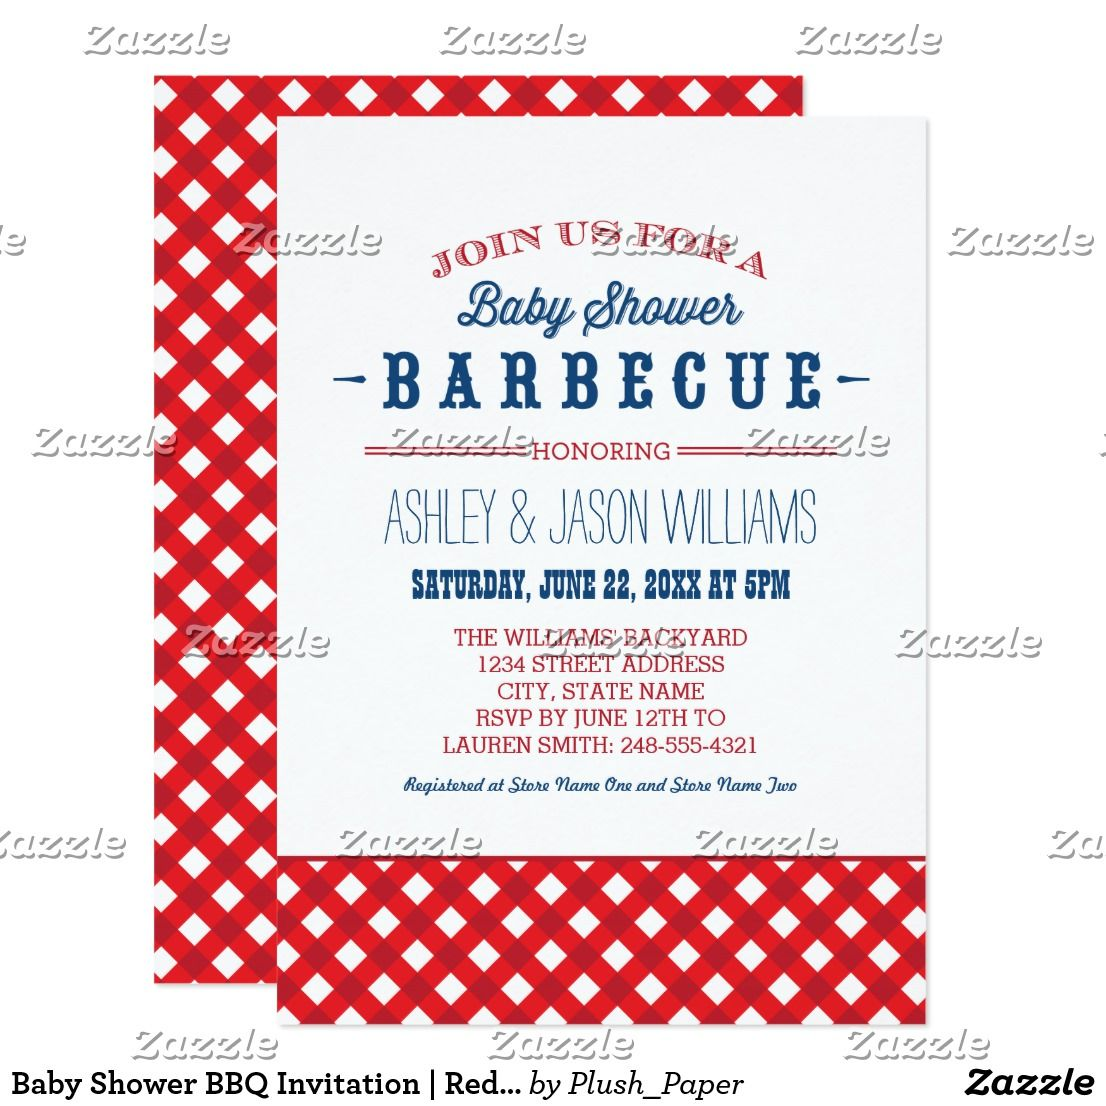 Baby Shower BBQ Invitation | Red White & Blue Festive and stylish ...